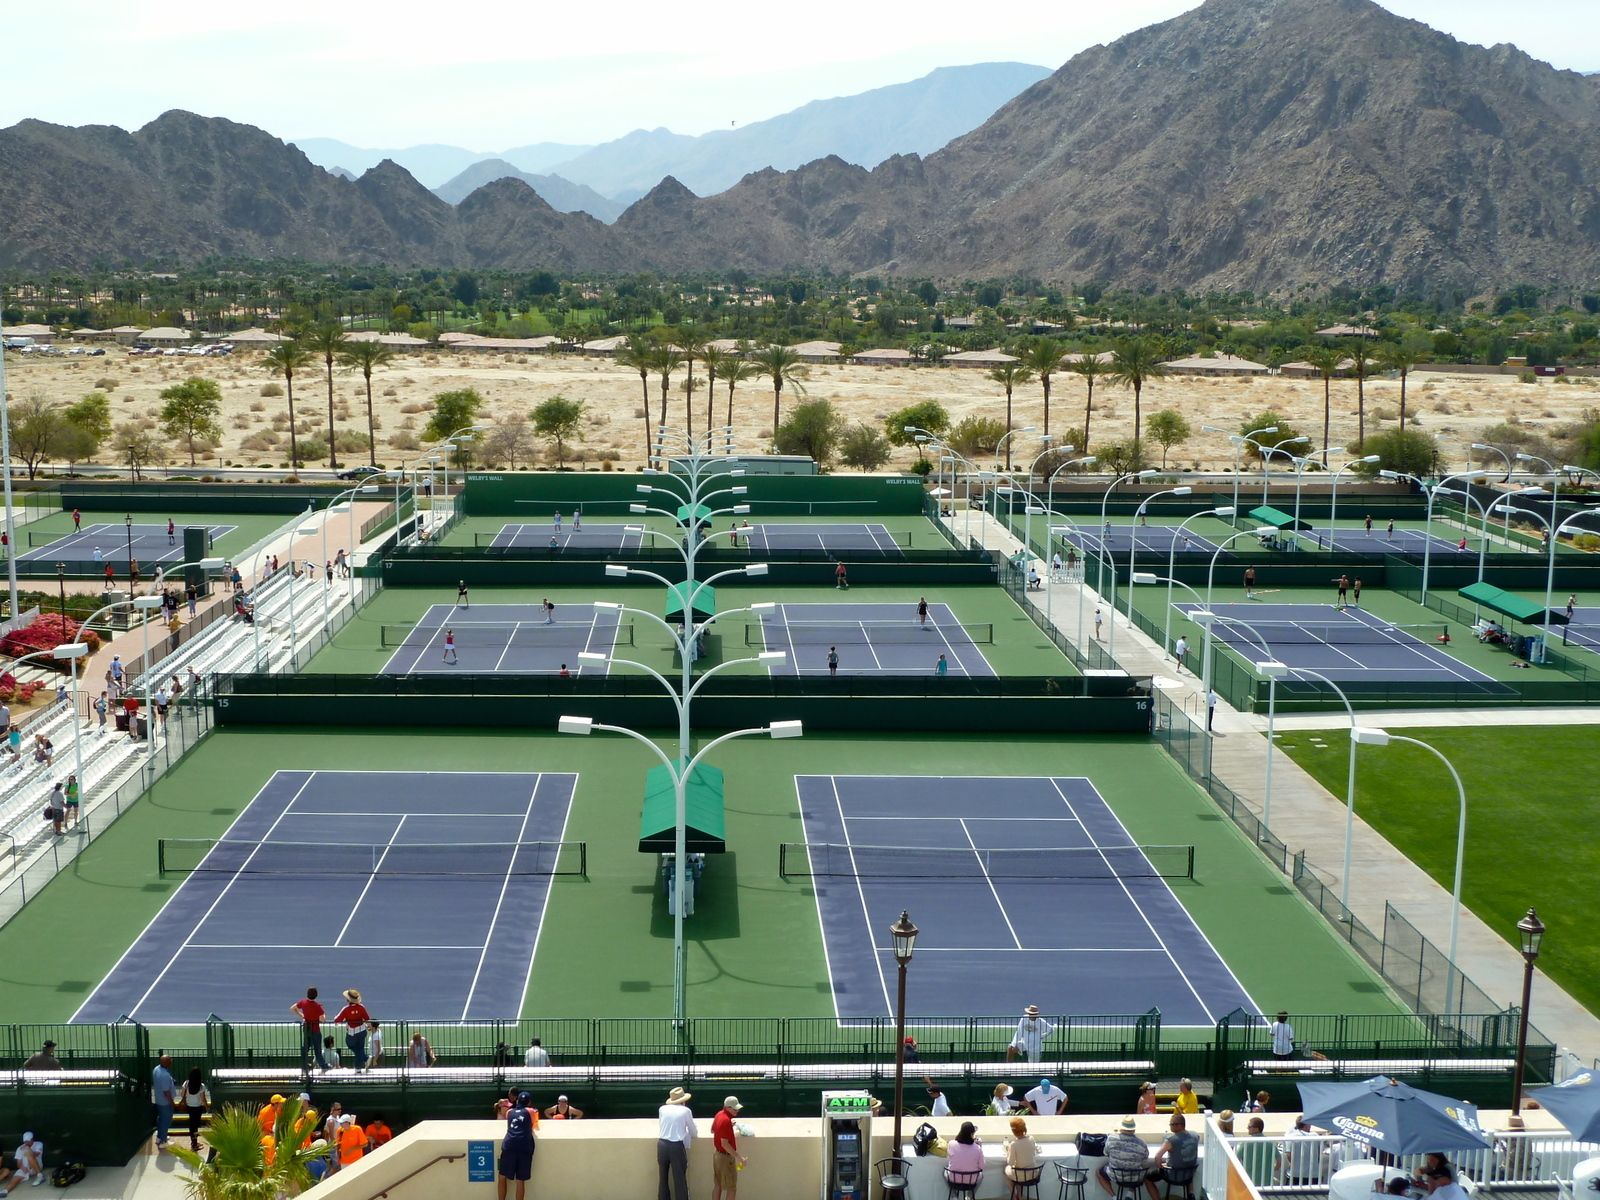 Tennis Indian Wells Ergebnisse